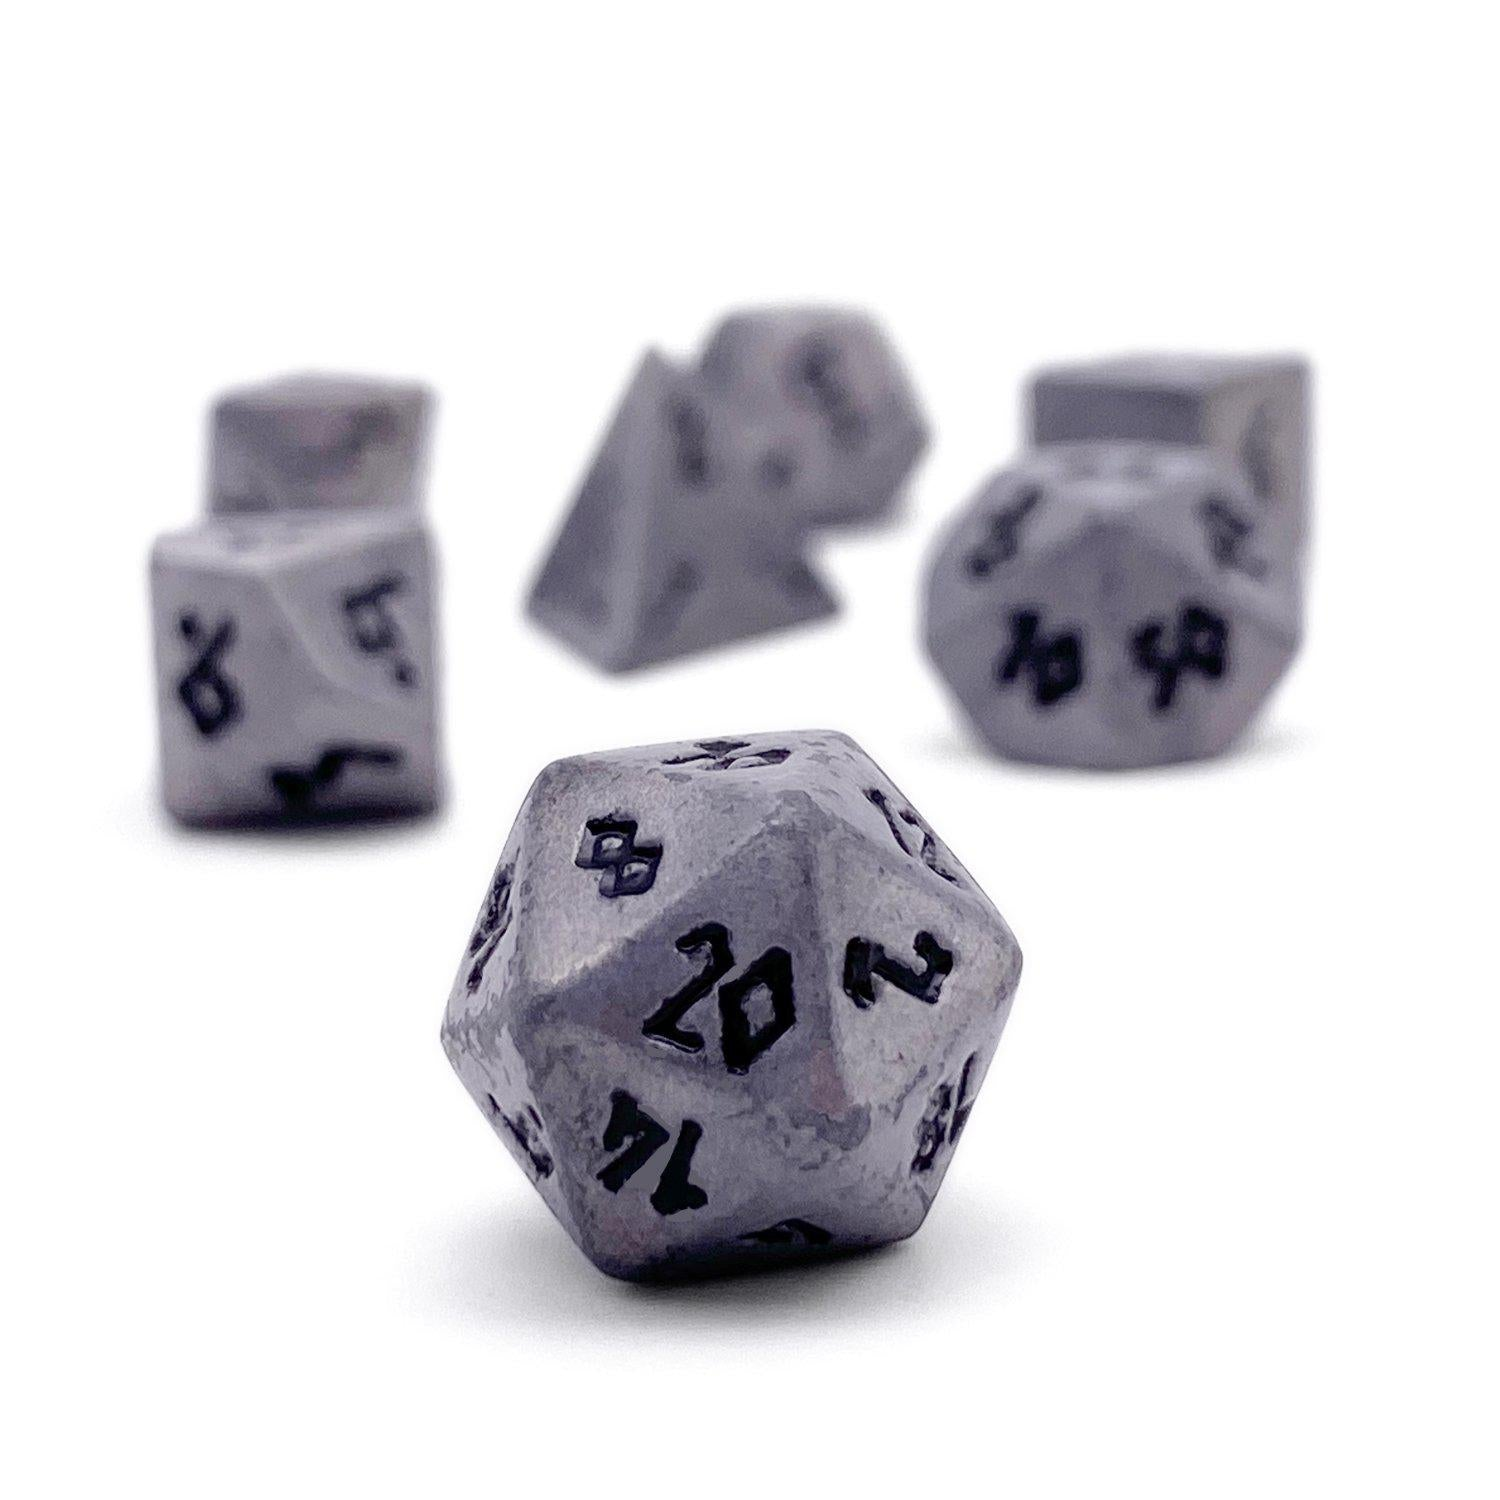 Aged Mithiral Pebble ™ Dice - 10mm Alloy Mini Polyhedral Dice Set